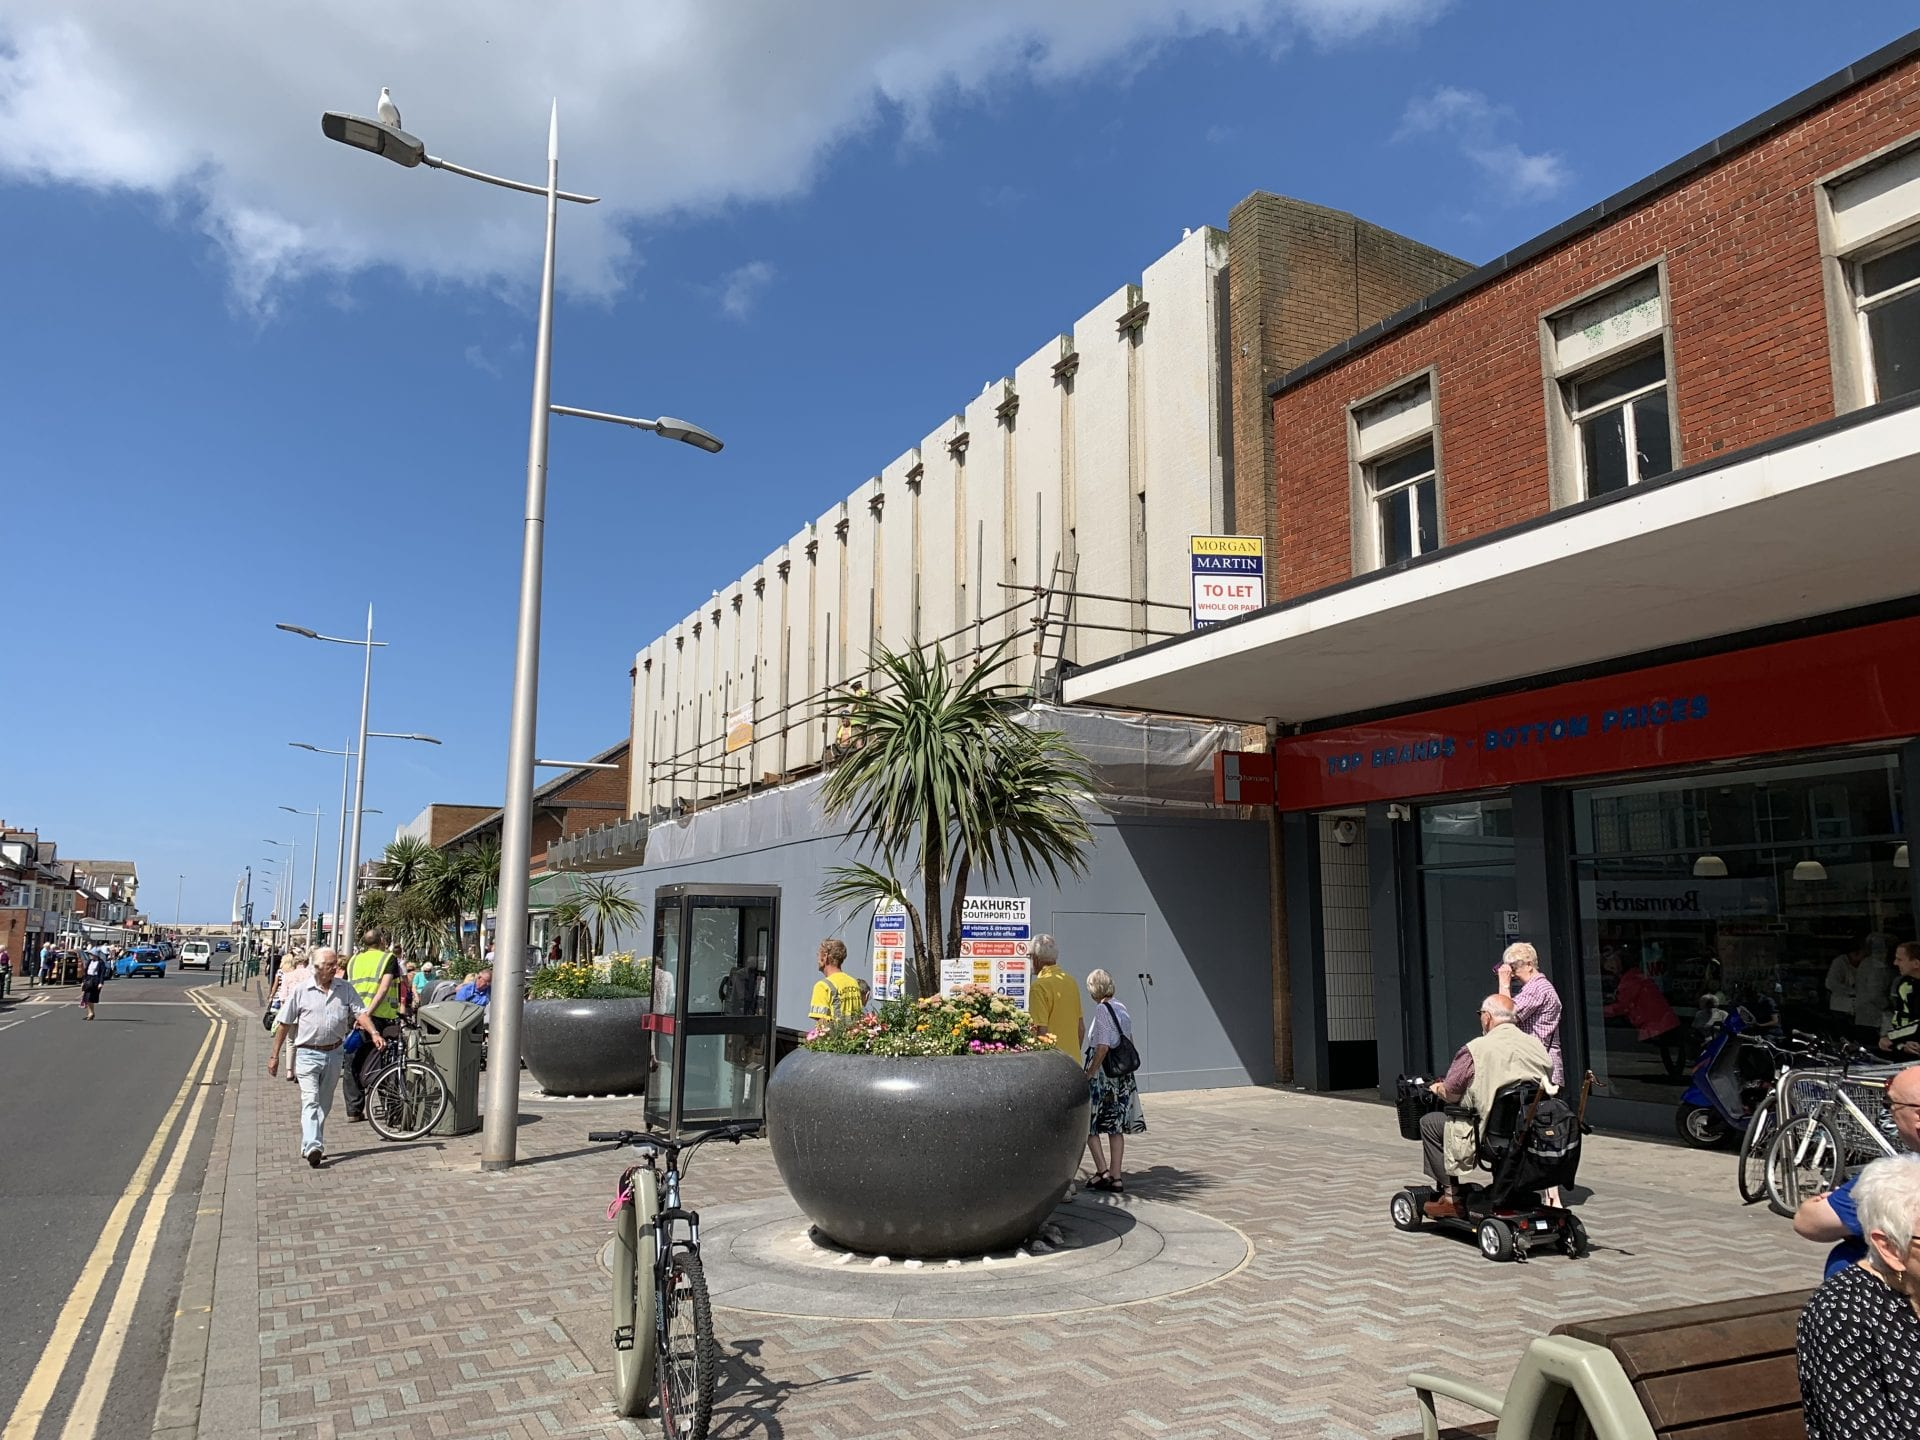 The Future is Bright for Cleveleys Tesco! - Visit Cleveleys